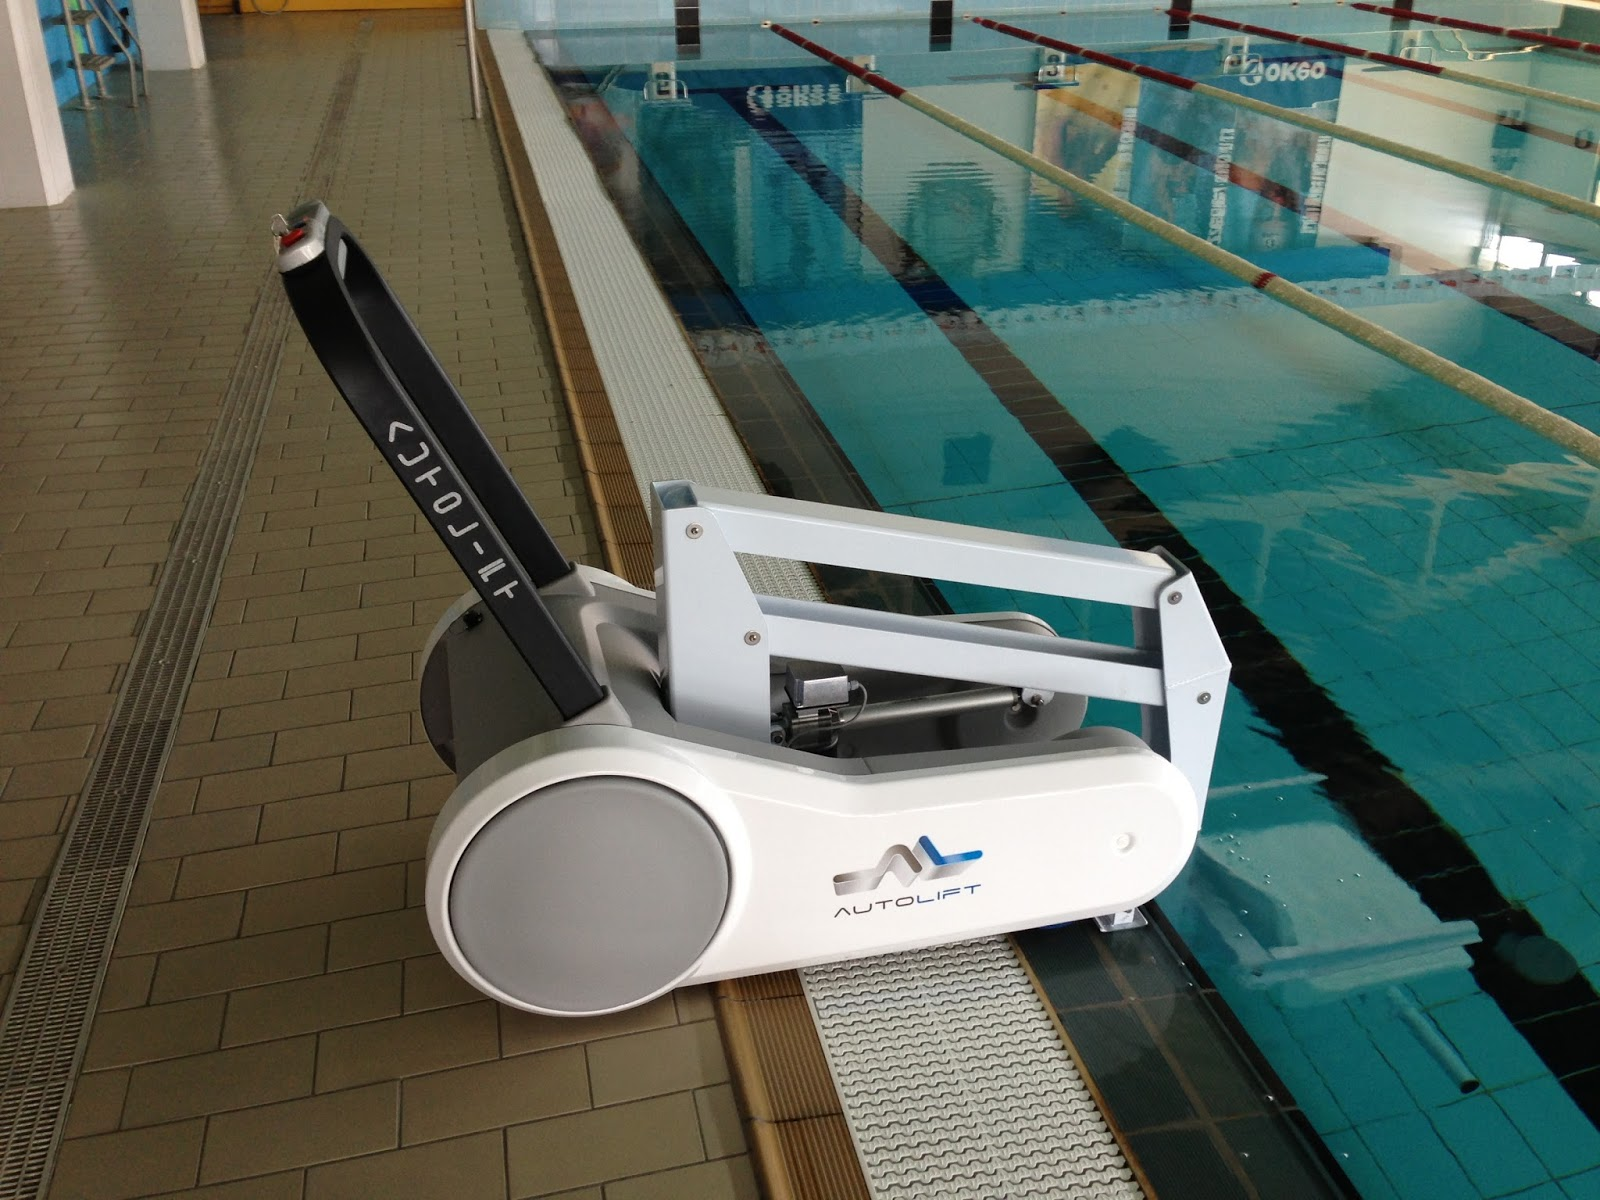 mobility products for disabled people pool access lift for swimmers with a disability